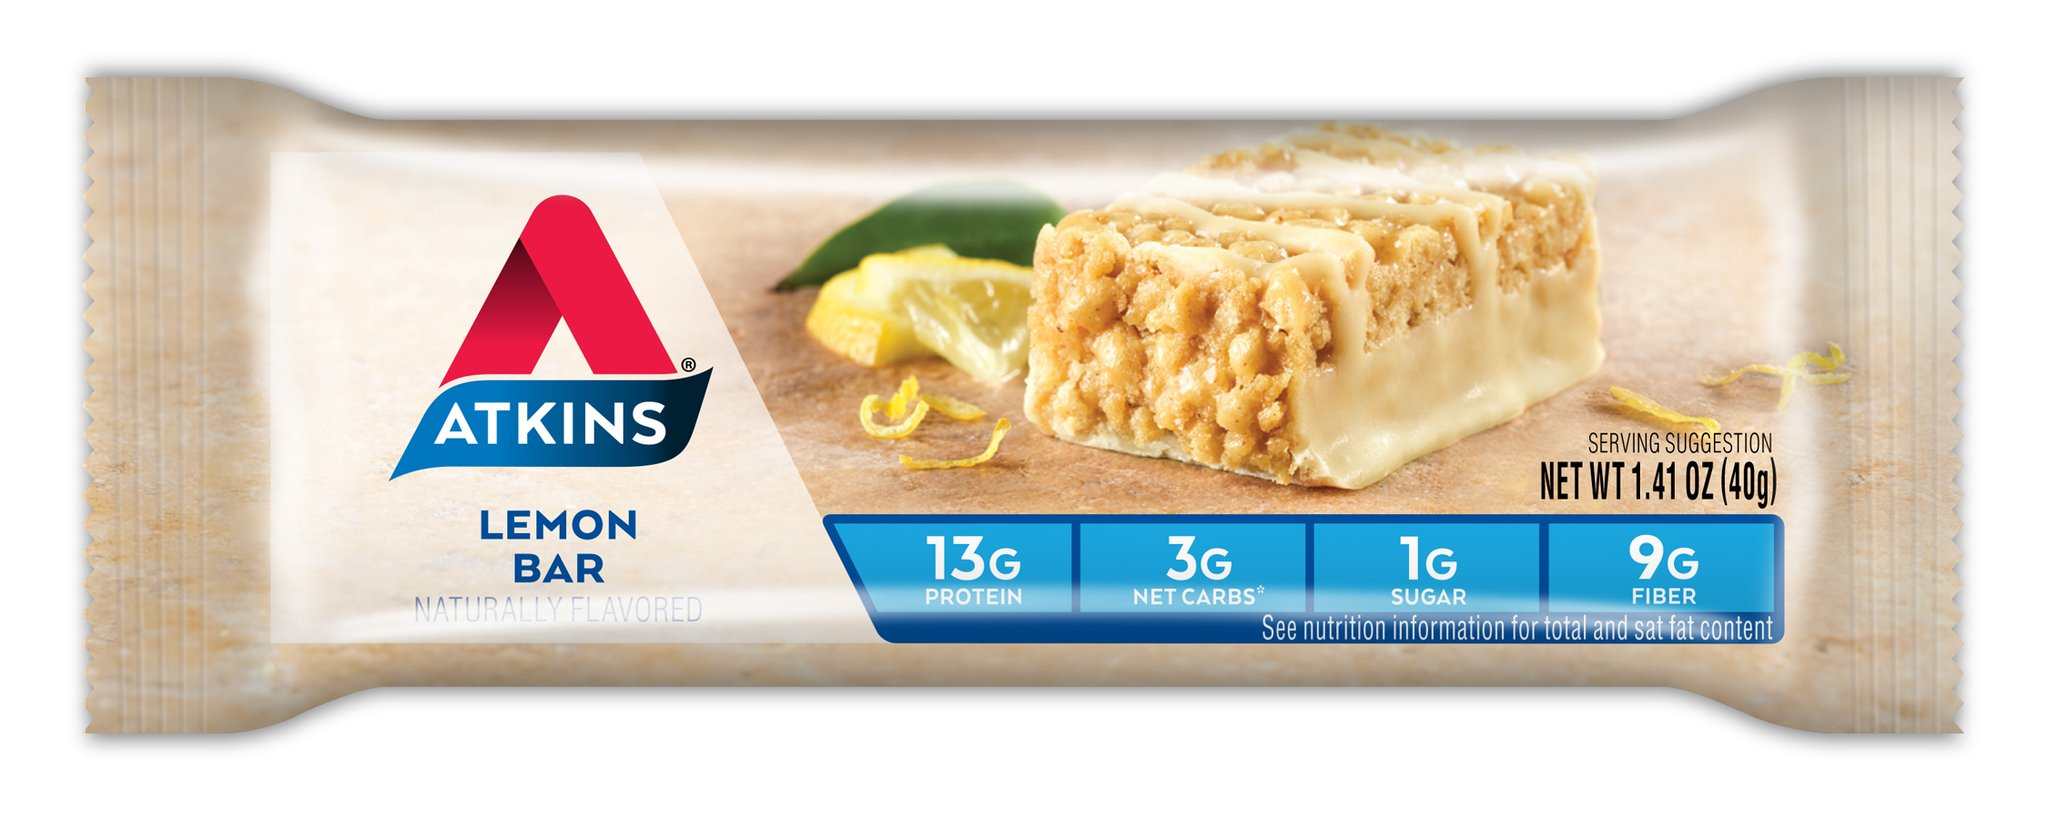 Atkins Gluten Free Snack Bar, Lemon Bar, 5 Count (Pack of 6) by Atkins (Image #2)